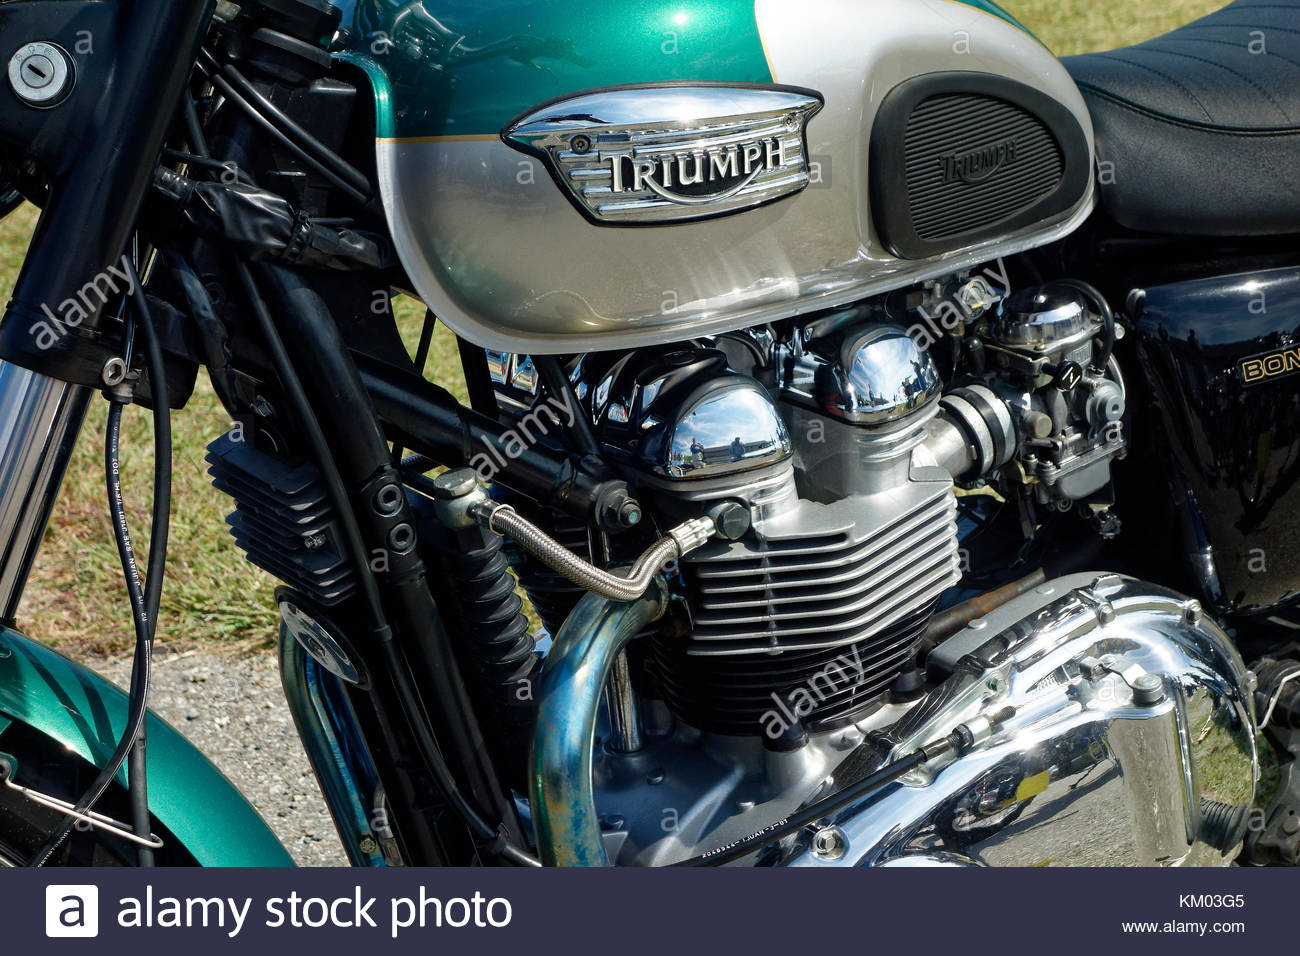 Triumph Bonneville motorcycle at the annual meet, Owls Head Transportation Museum, Maine - Stock Image